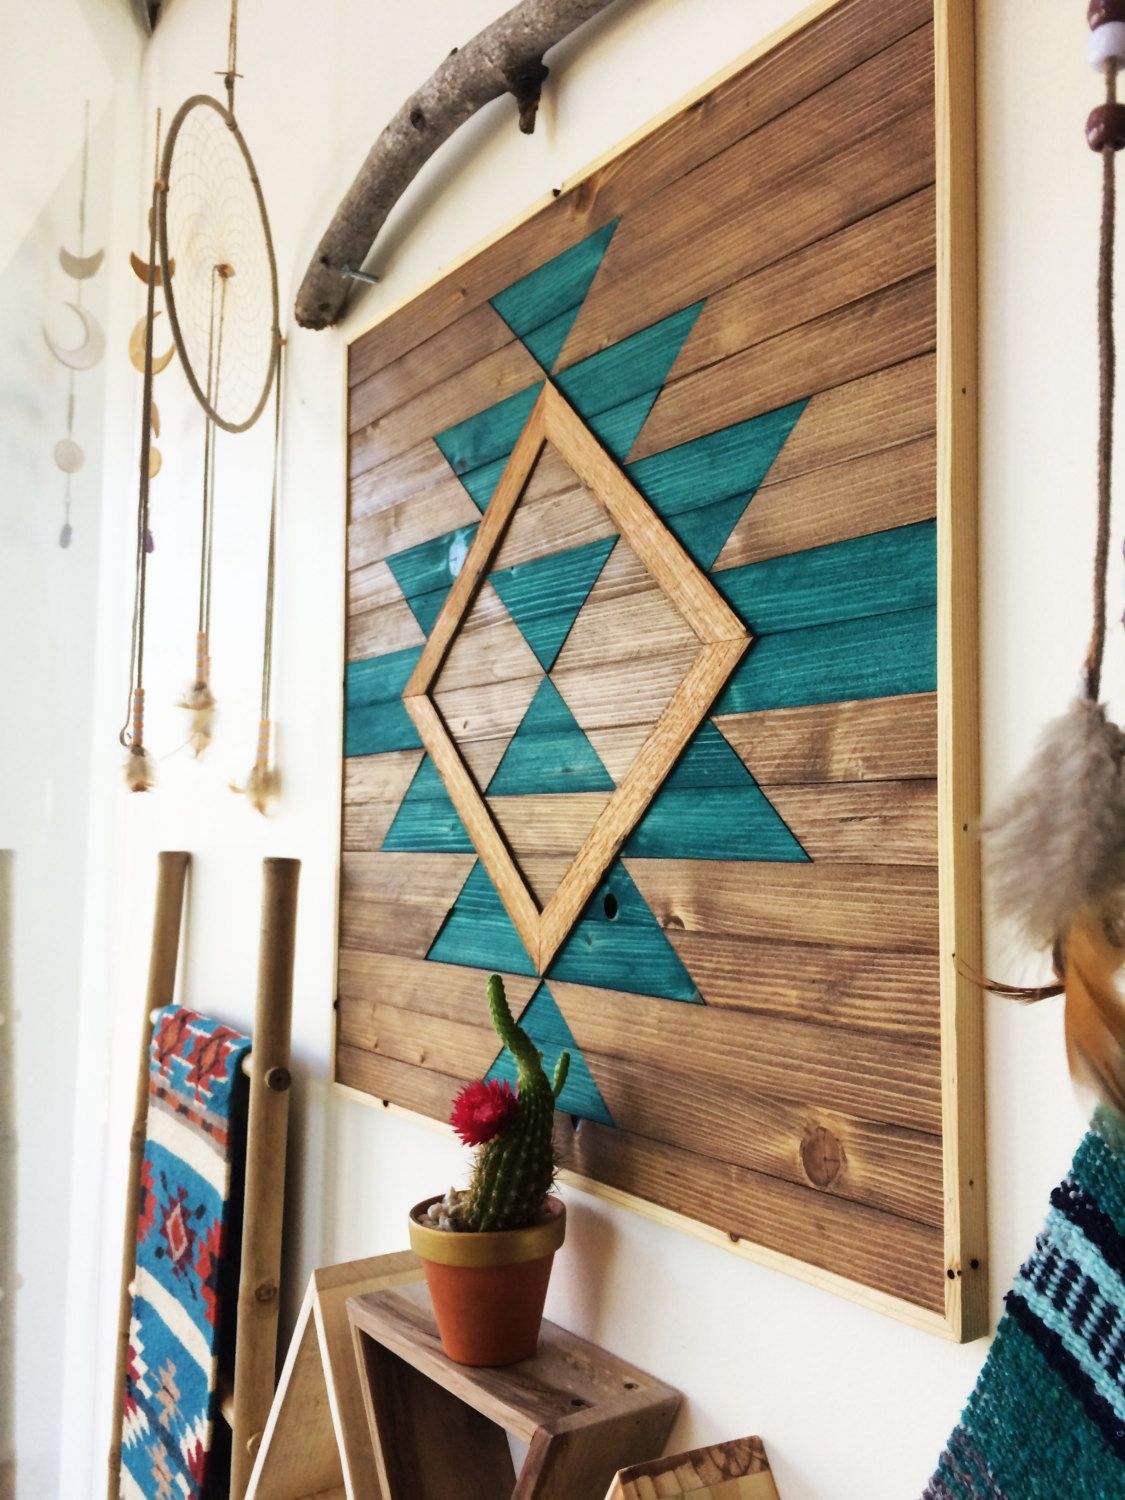 Reclaimed wood wall art wooden wall art geometric wood art reclaimed wood wall art wooden wall art geometric wood art wooden wall art hanging modern wood art boho wood art wood wall decor amipublicfo Choice Image